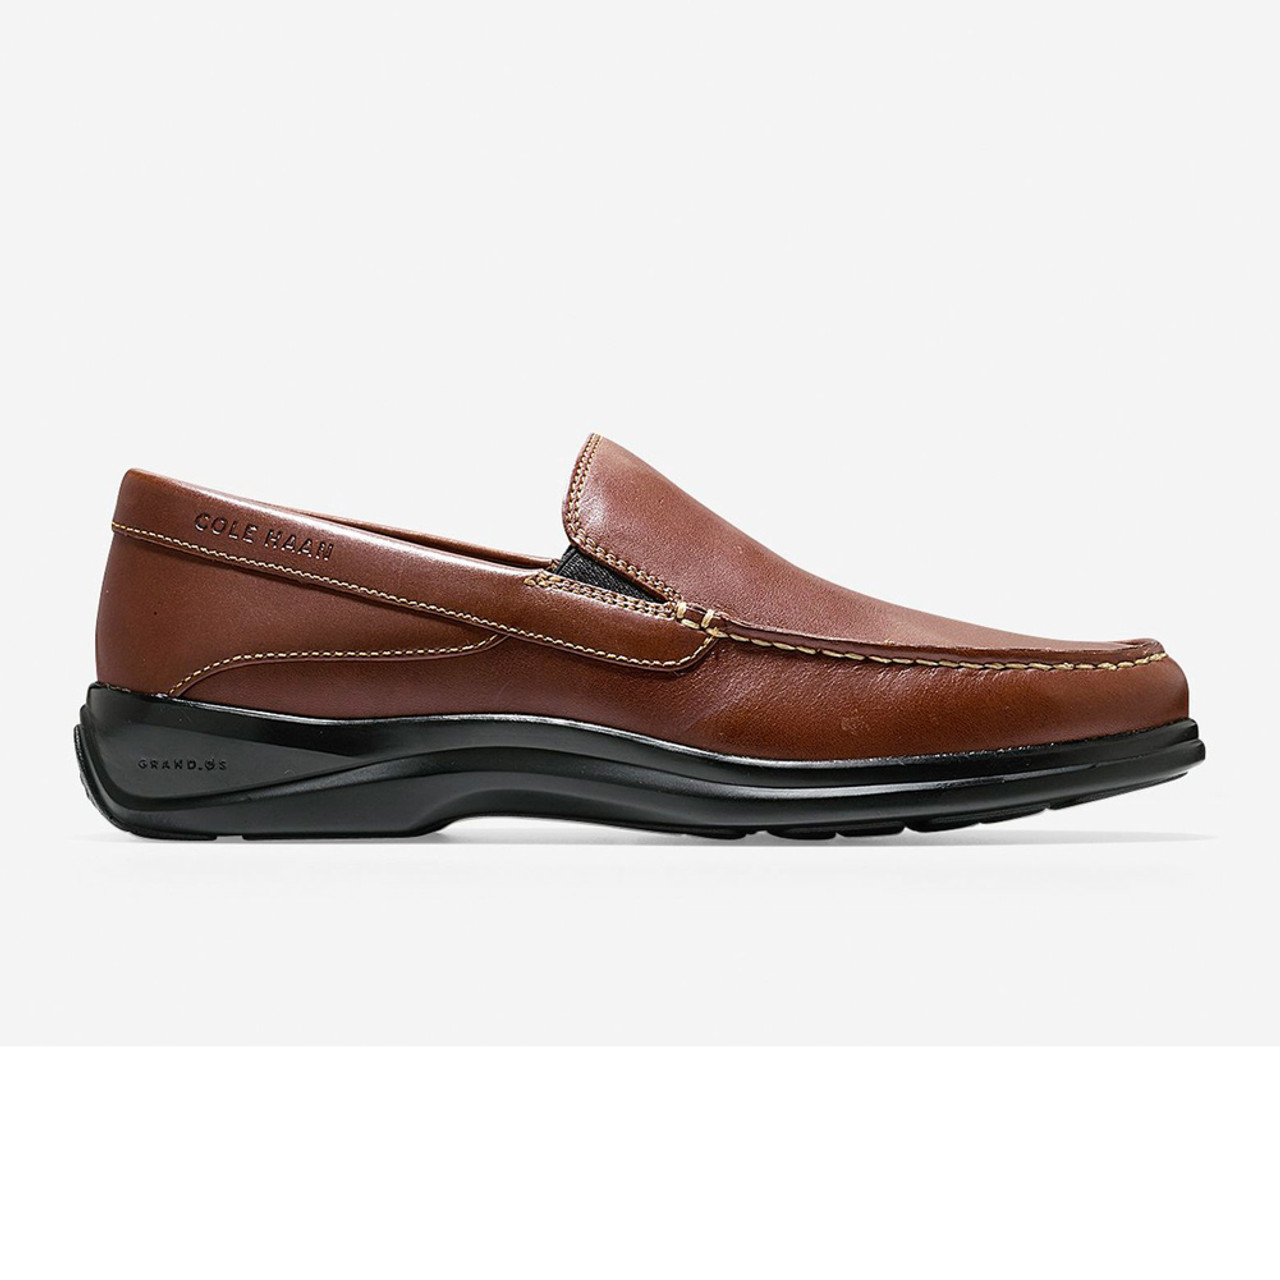 8ee11900177 Cole Haan Men s Santa Barbara Twin Gore Loafer Harvest Brown - Shop now    Shoolu.